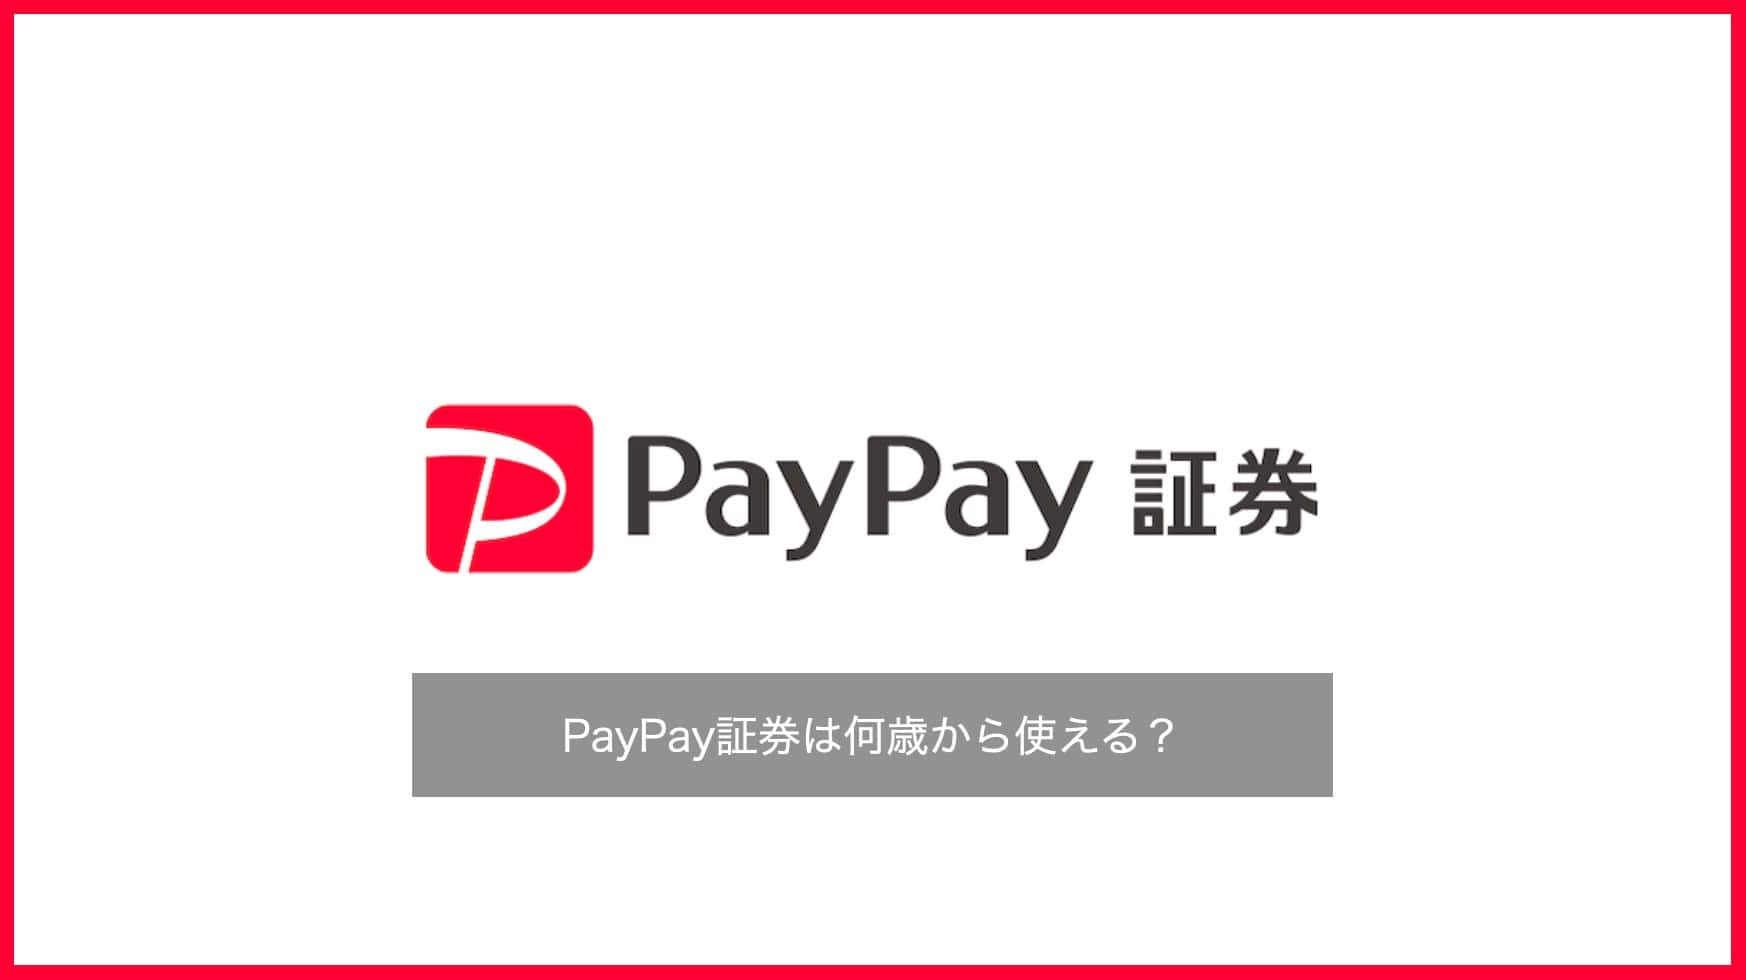 PayPay証券は何歳から使えるか解説